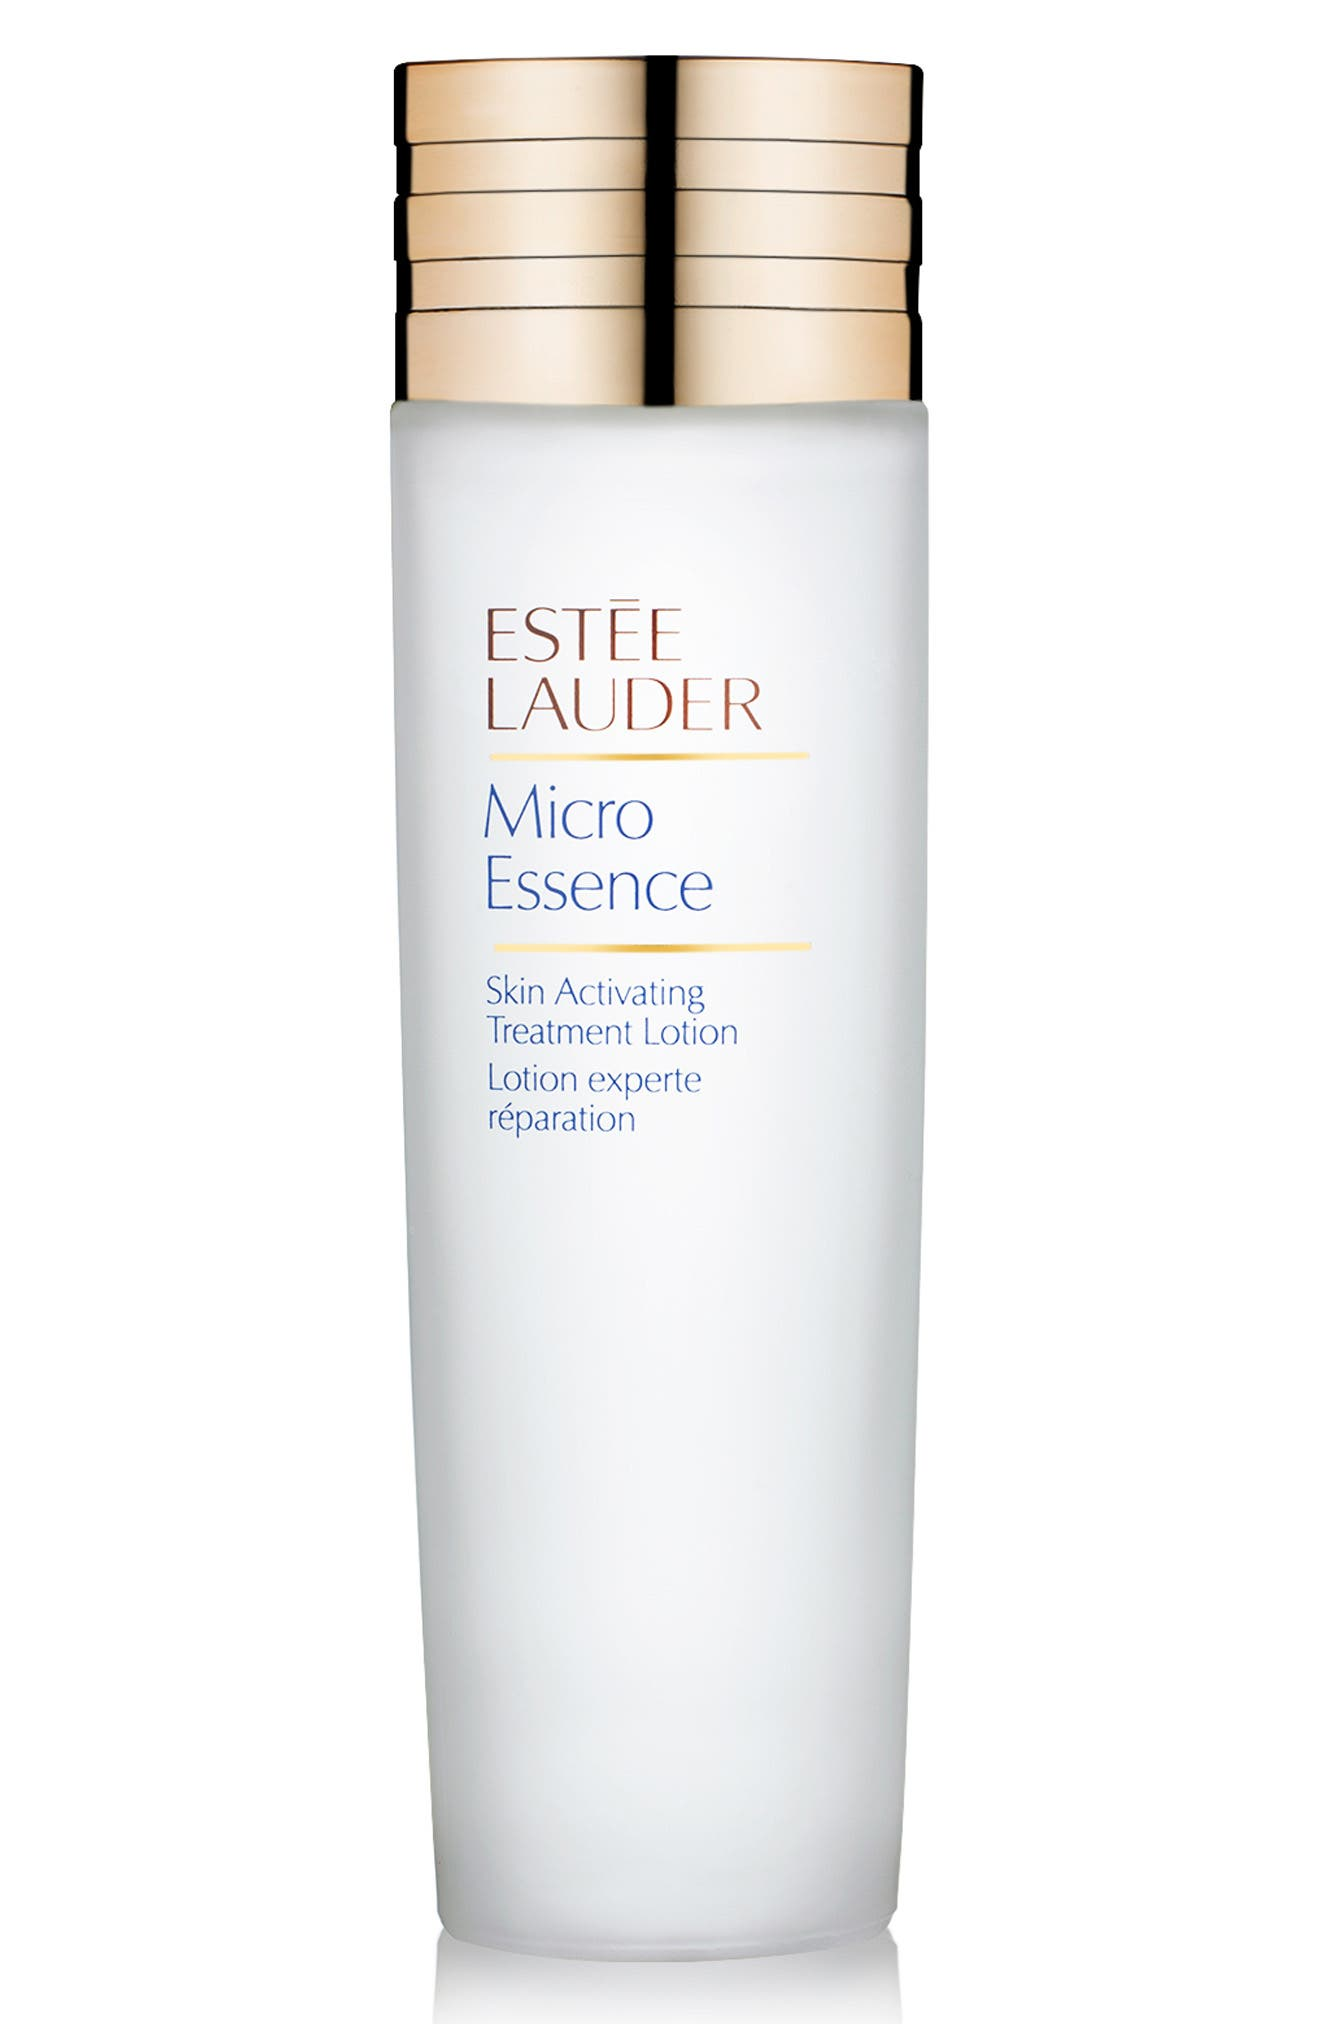 ESTÉE LAUDER, Micro Essence Skin Activating Treatment Lotion, Main thumbnail 1, color, NO COLOR